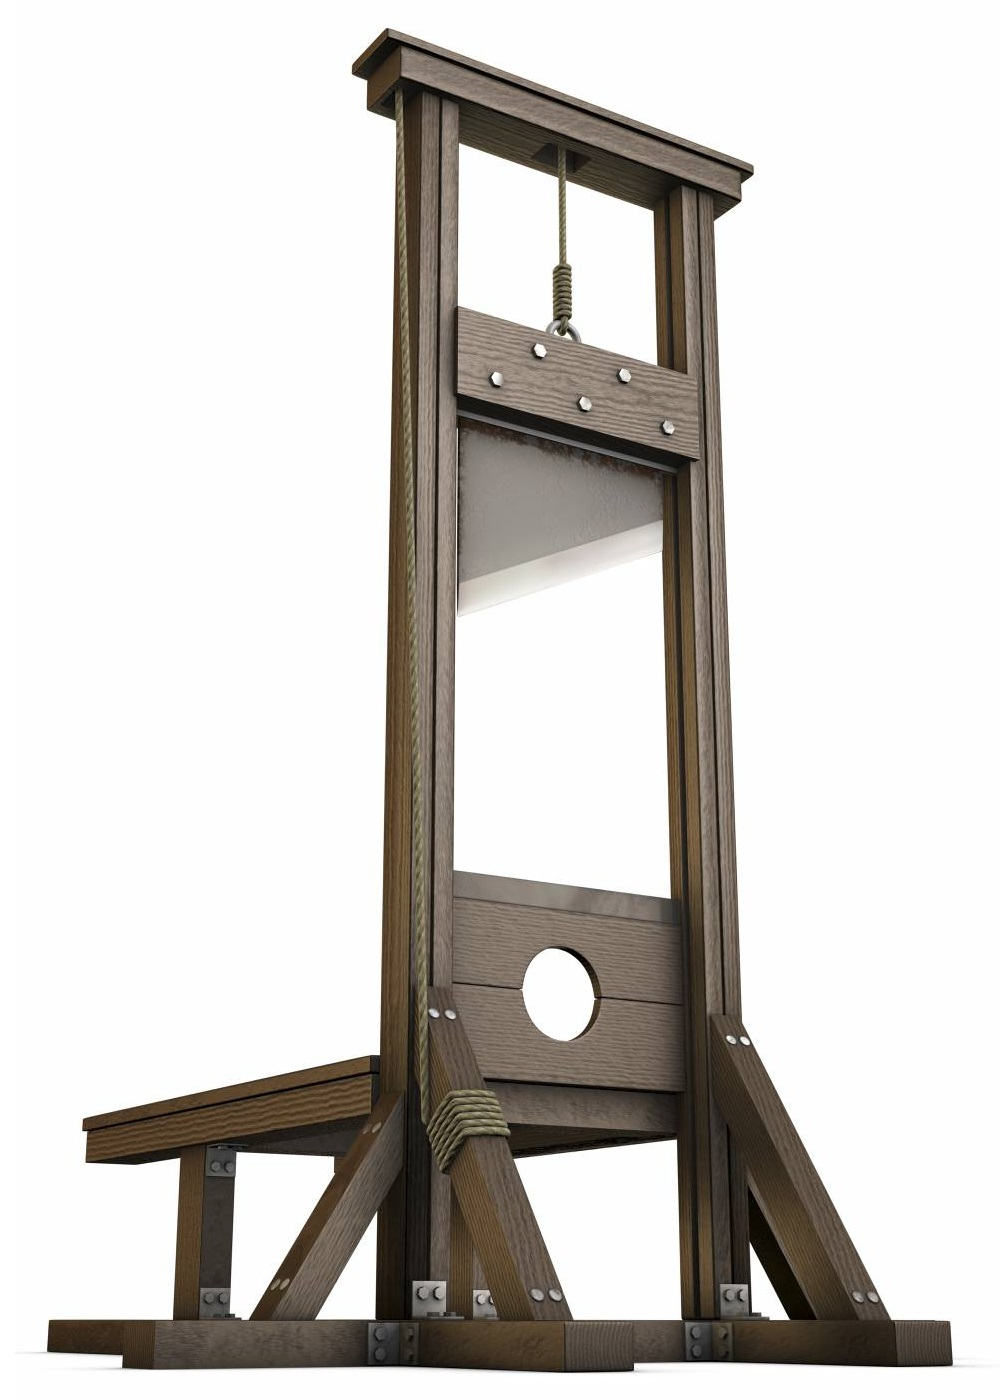 Guillotines